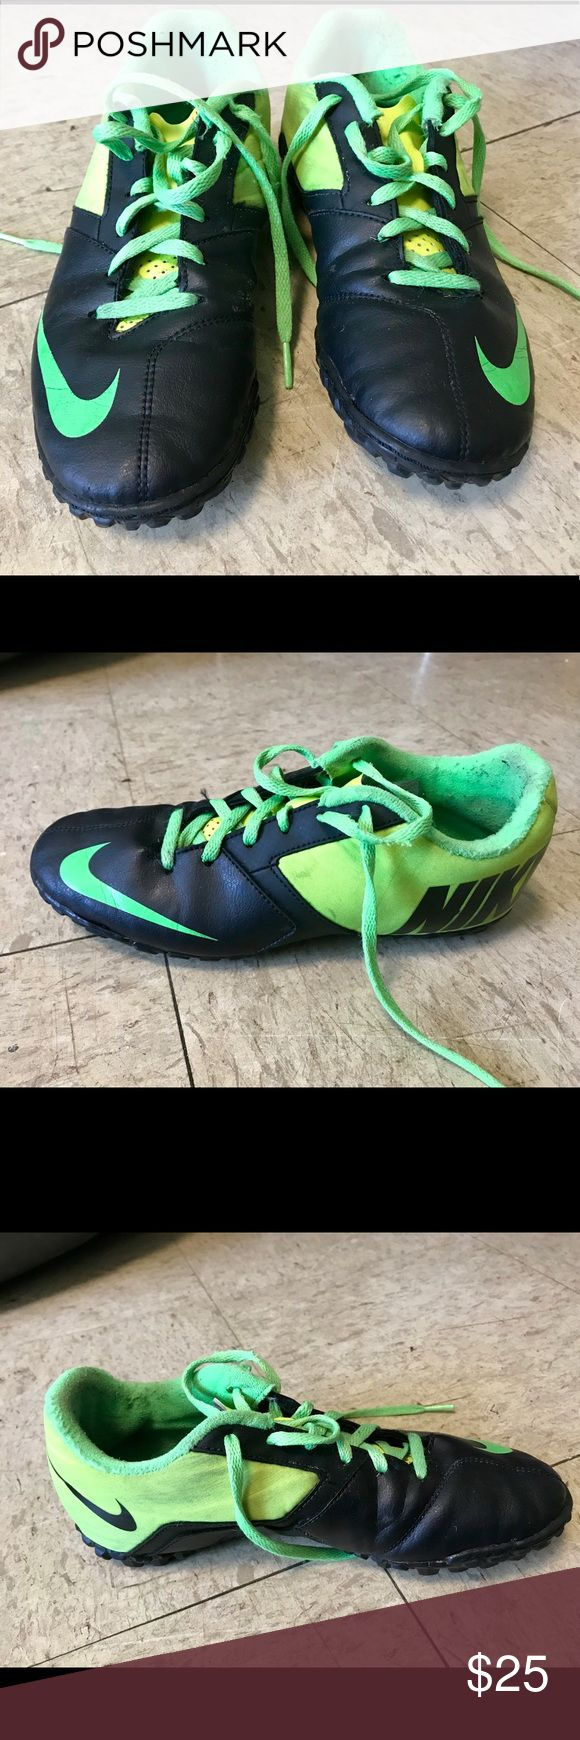 "NIKE indoor/ turf women's soccer shoes Green, yellow, and black  Indoor and turf shoes  Comfortable Staining on the back by the ""Nike"" logo  Heavily worn but still in wearable condition  Open to offers for a lower price due to the staining and heavy use Nike Shoes Athletic Shoes"